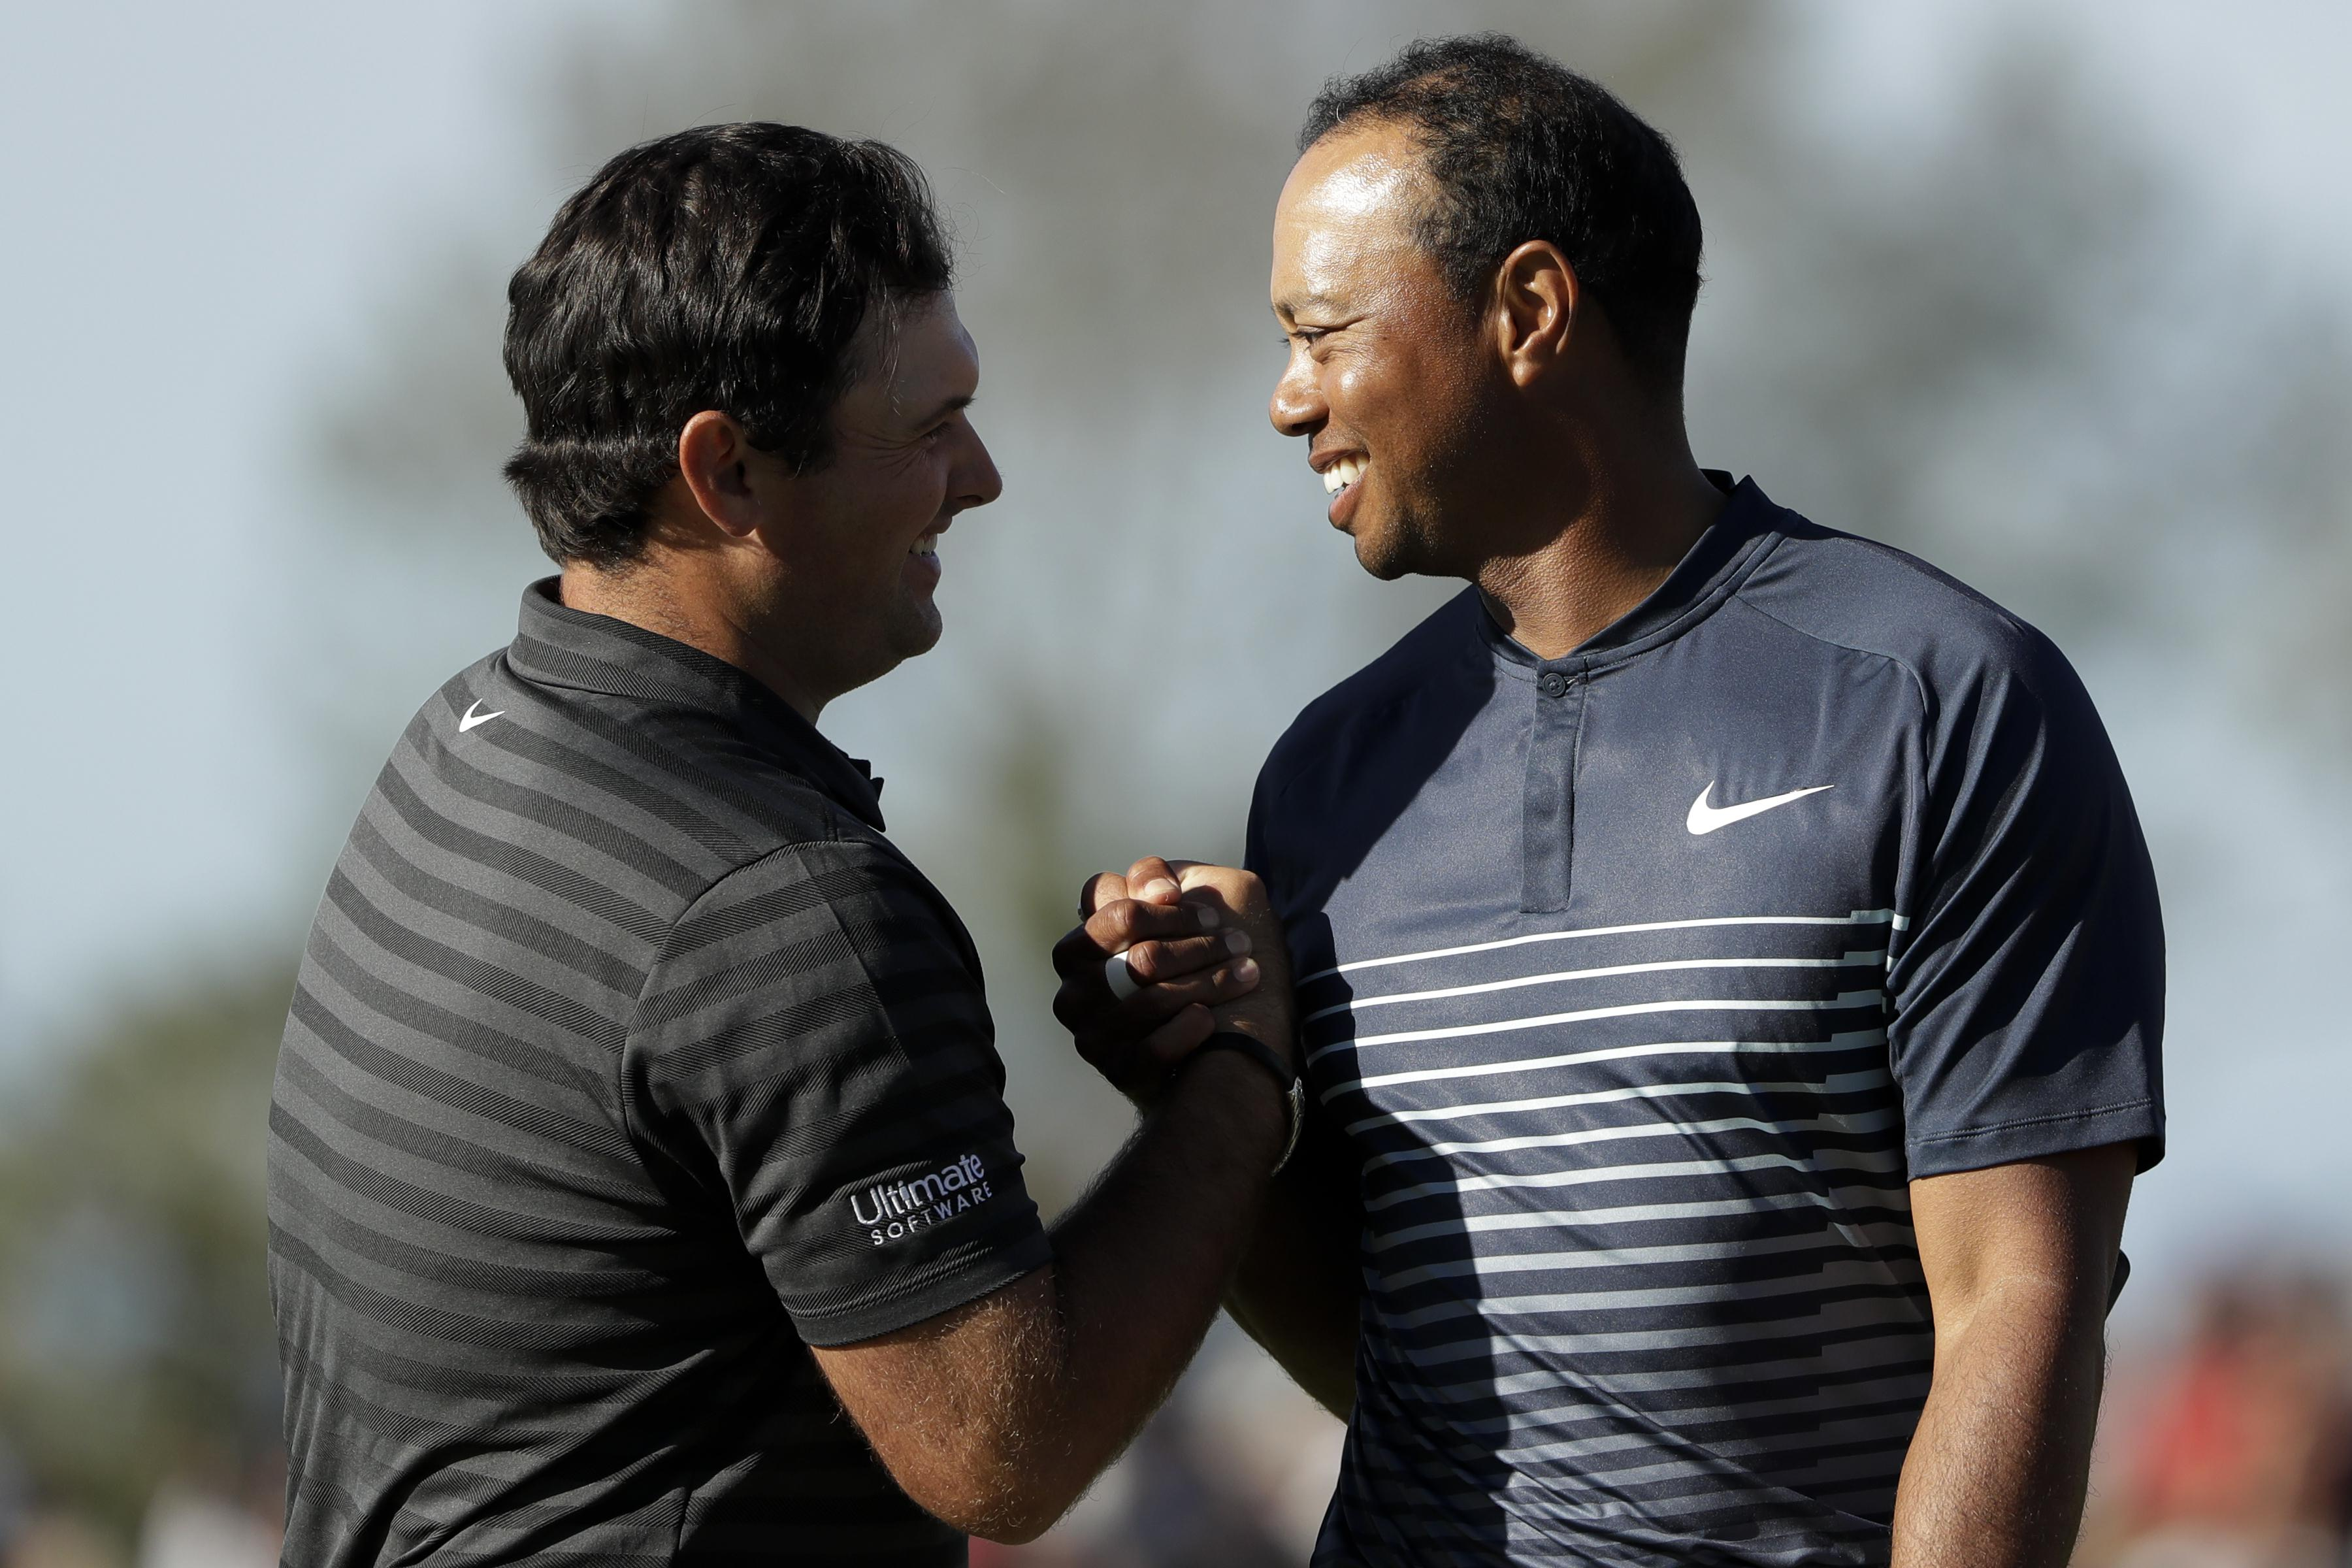 Tiger Woods looked relieved once the round was over and he was through